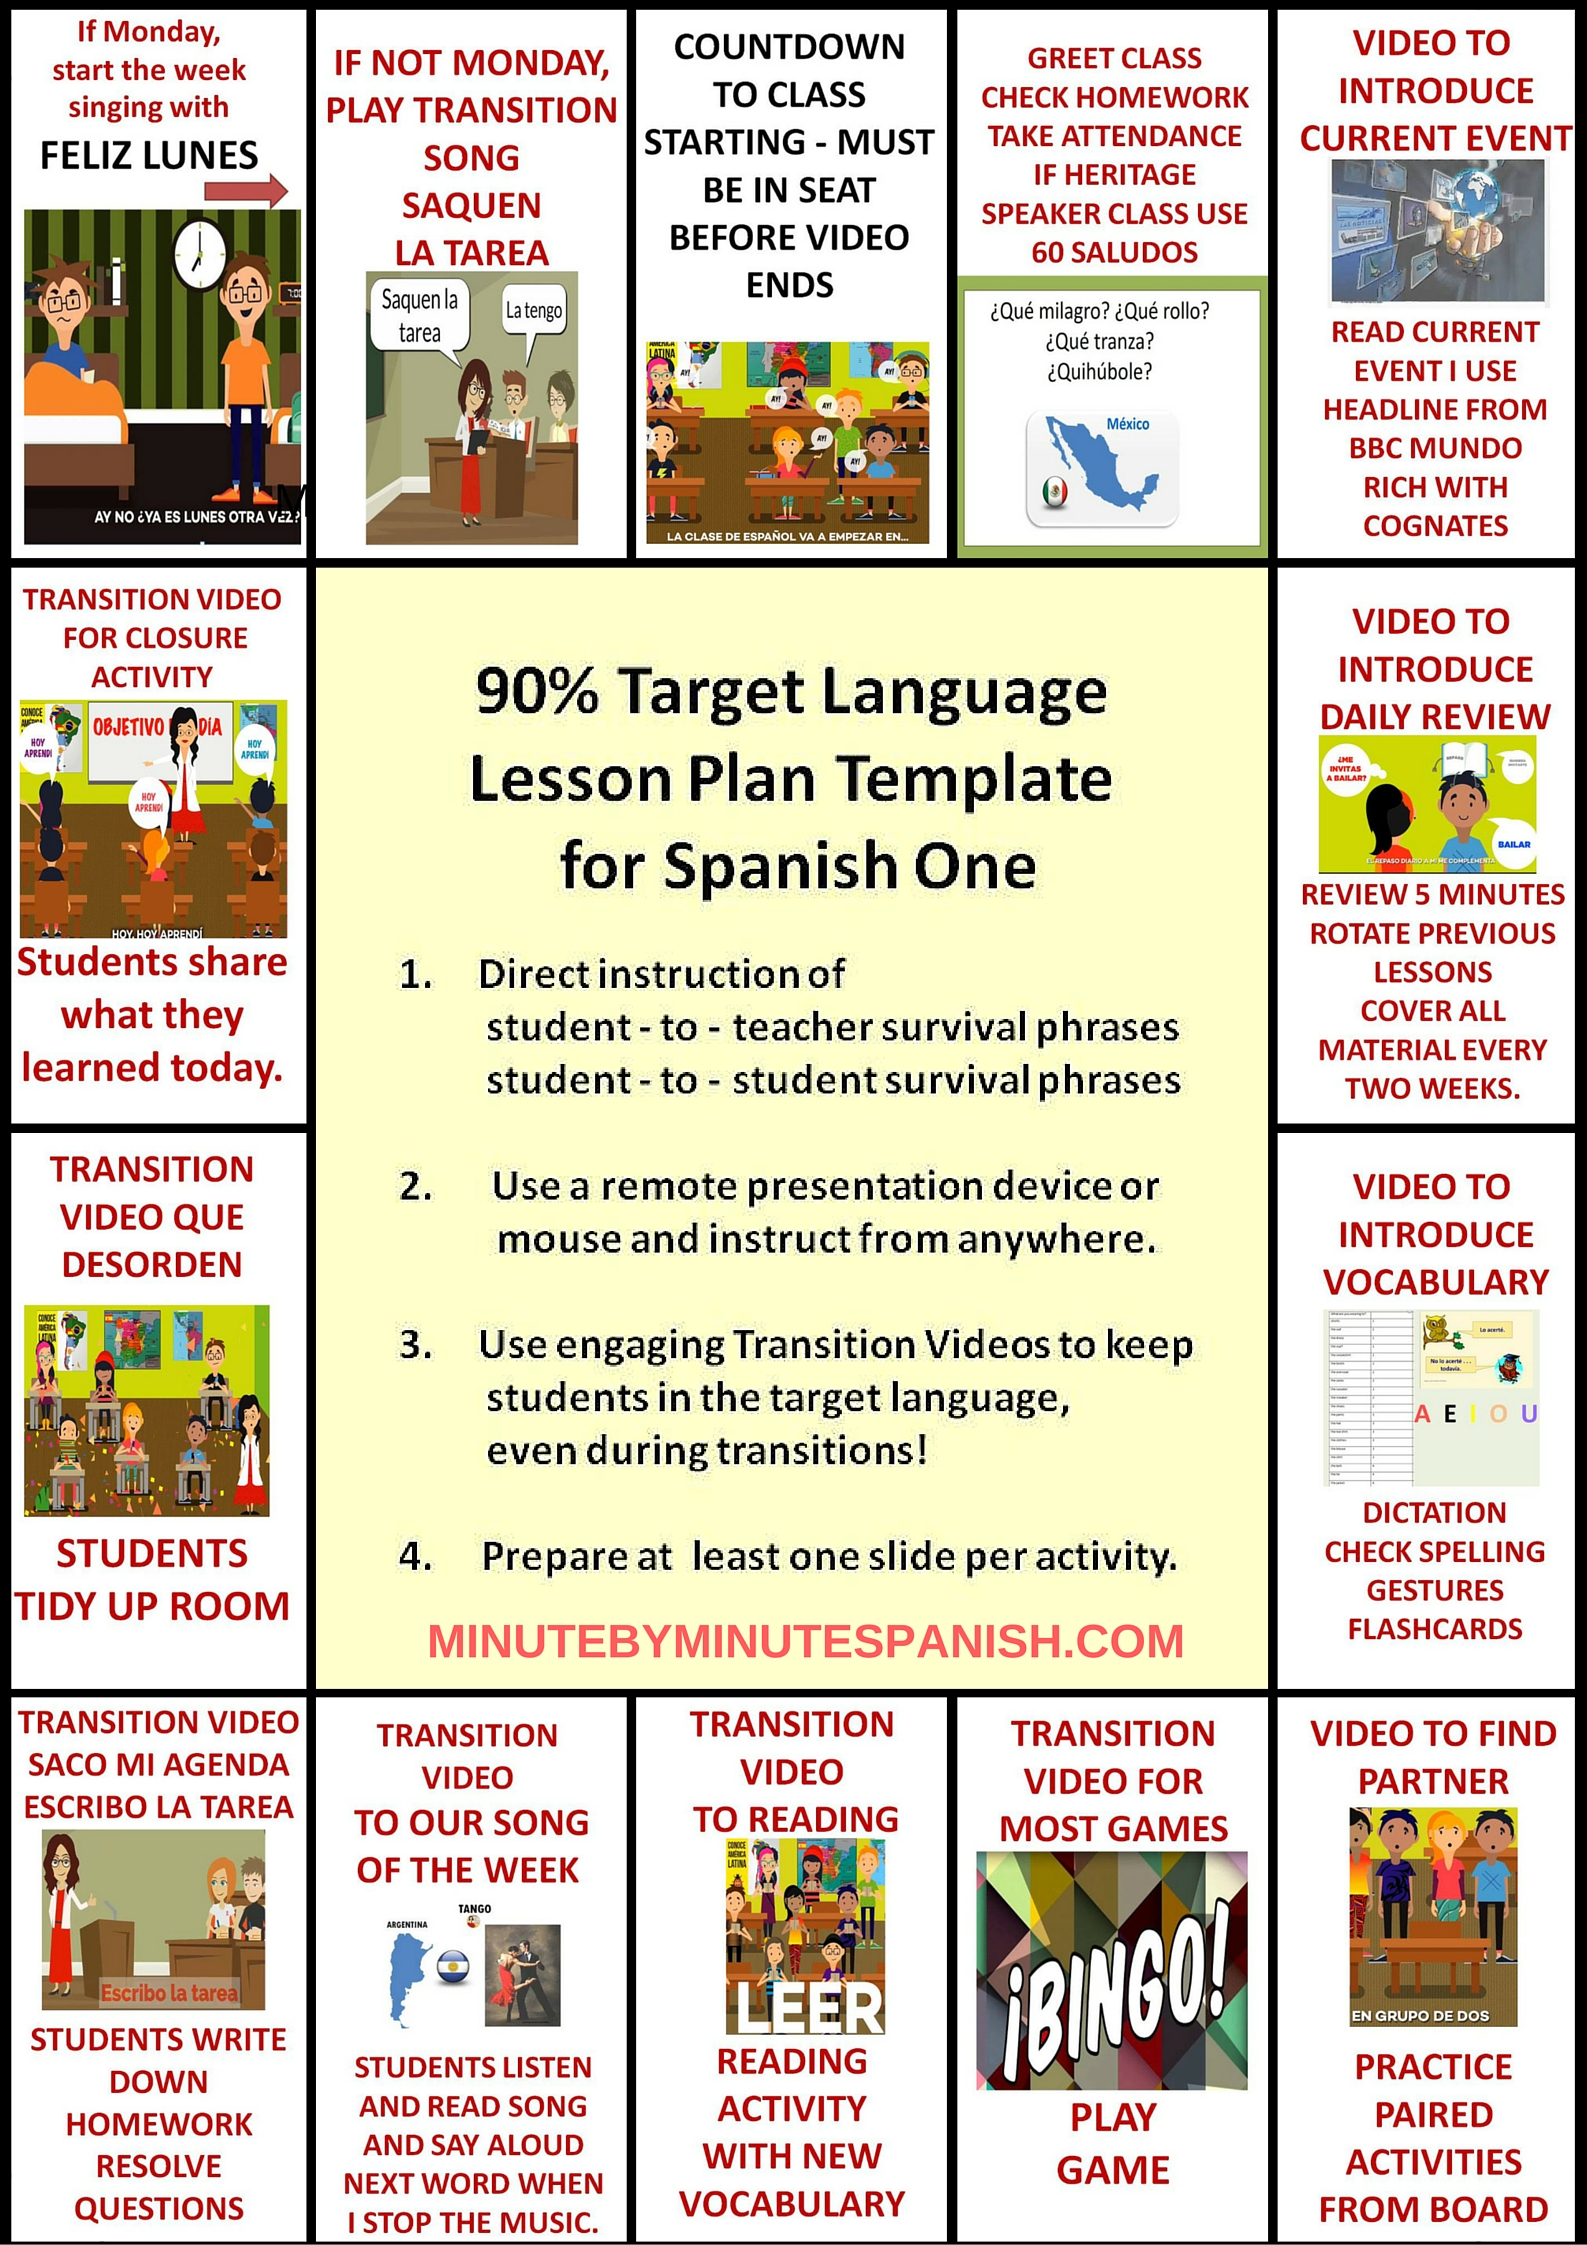 TARGET LANGUAGE LESSON PLAN TEMPLATE - Language lesson plan template